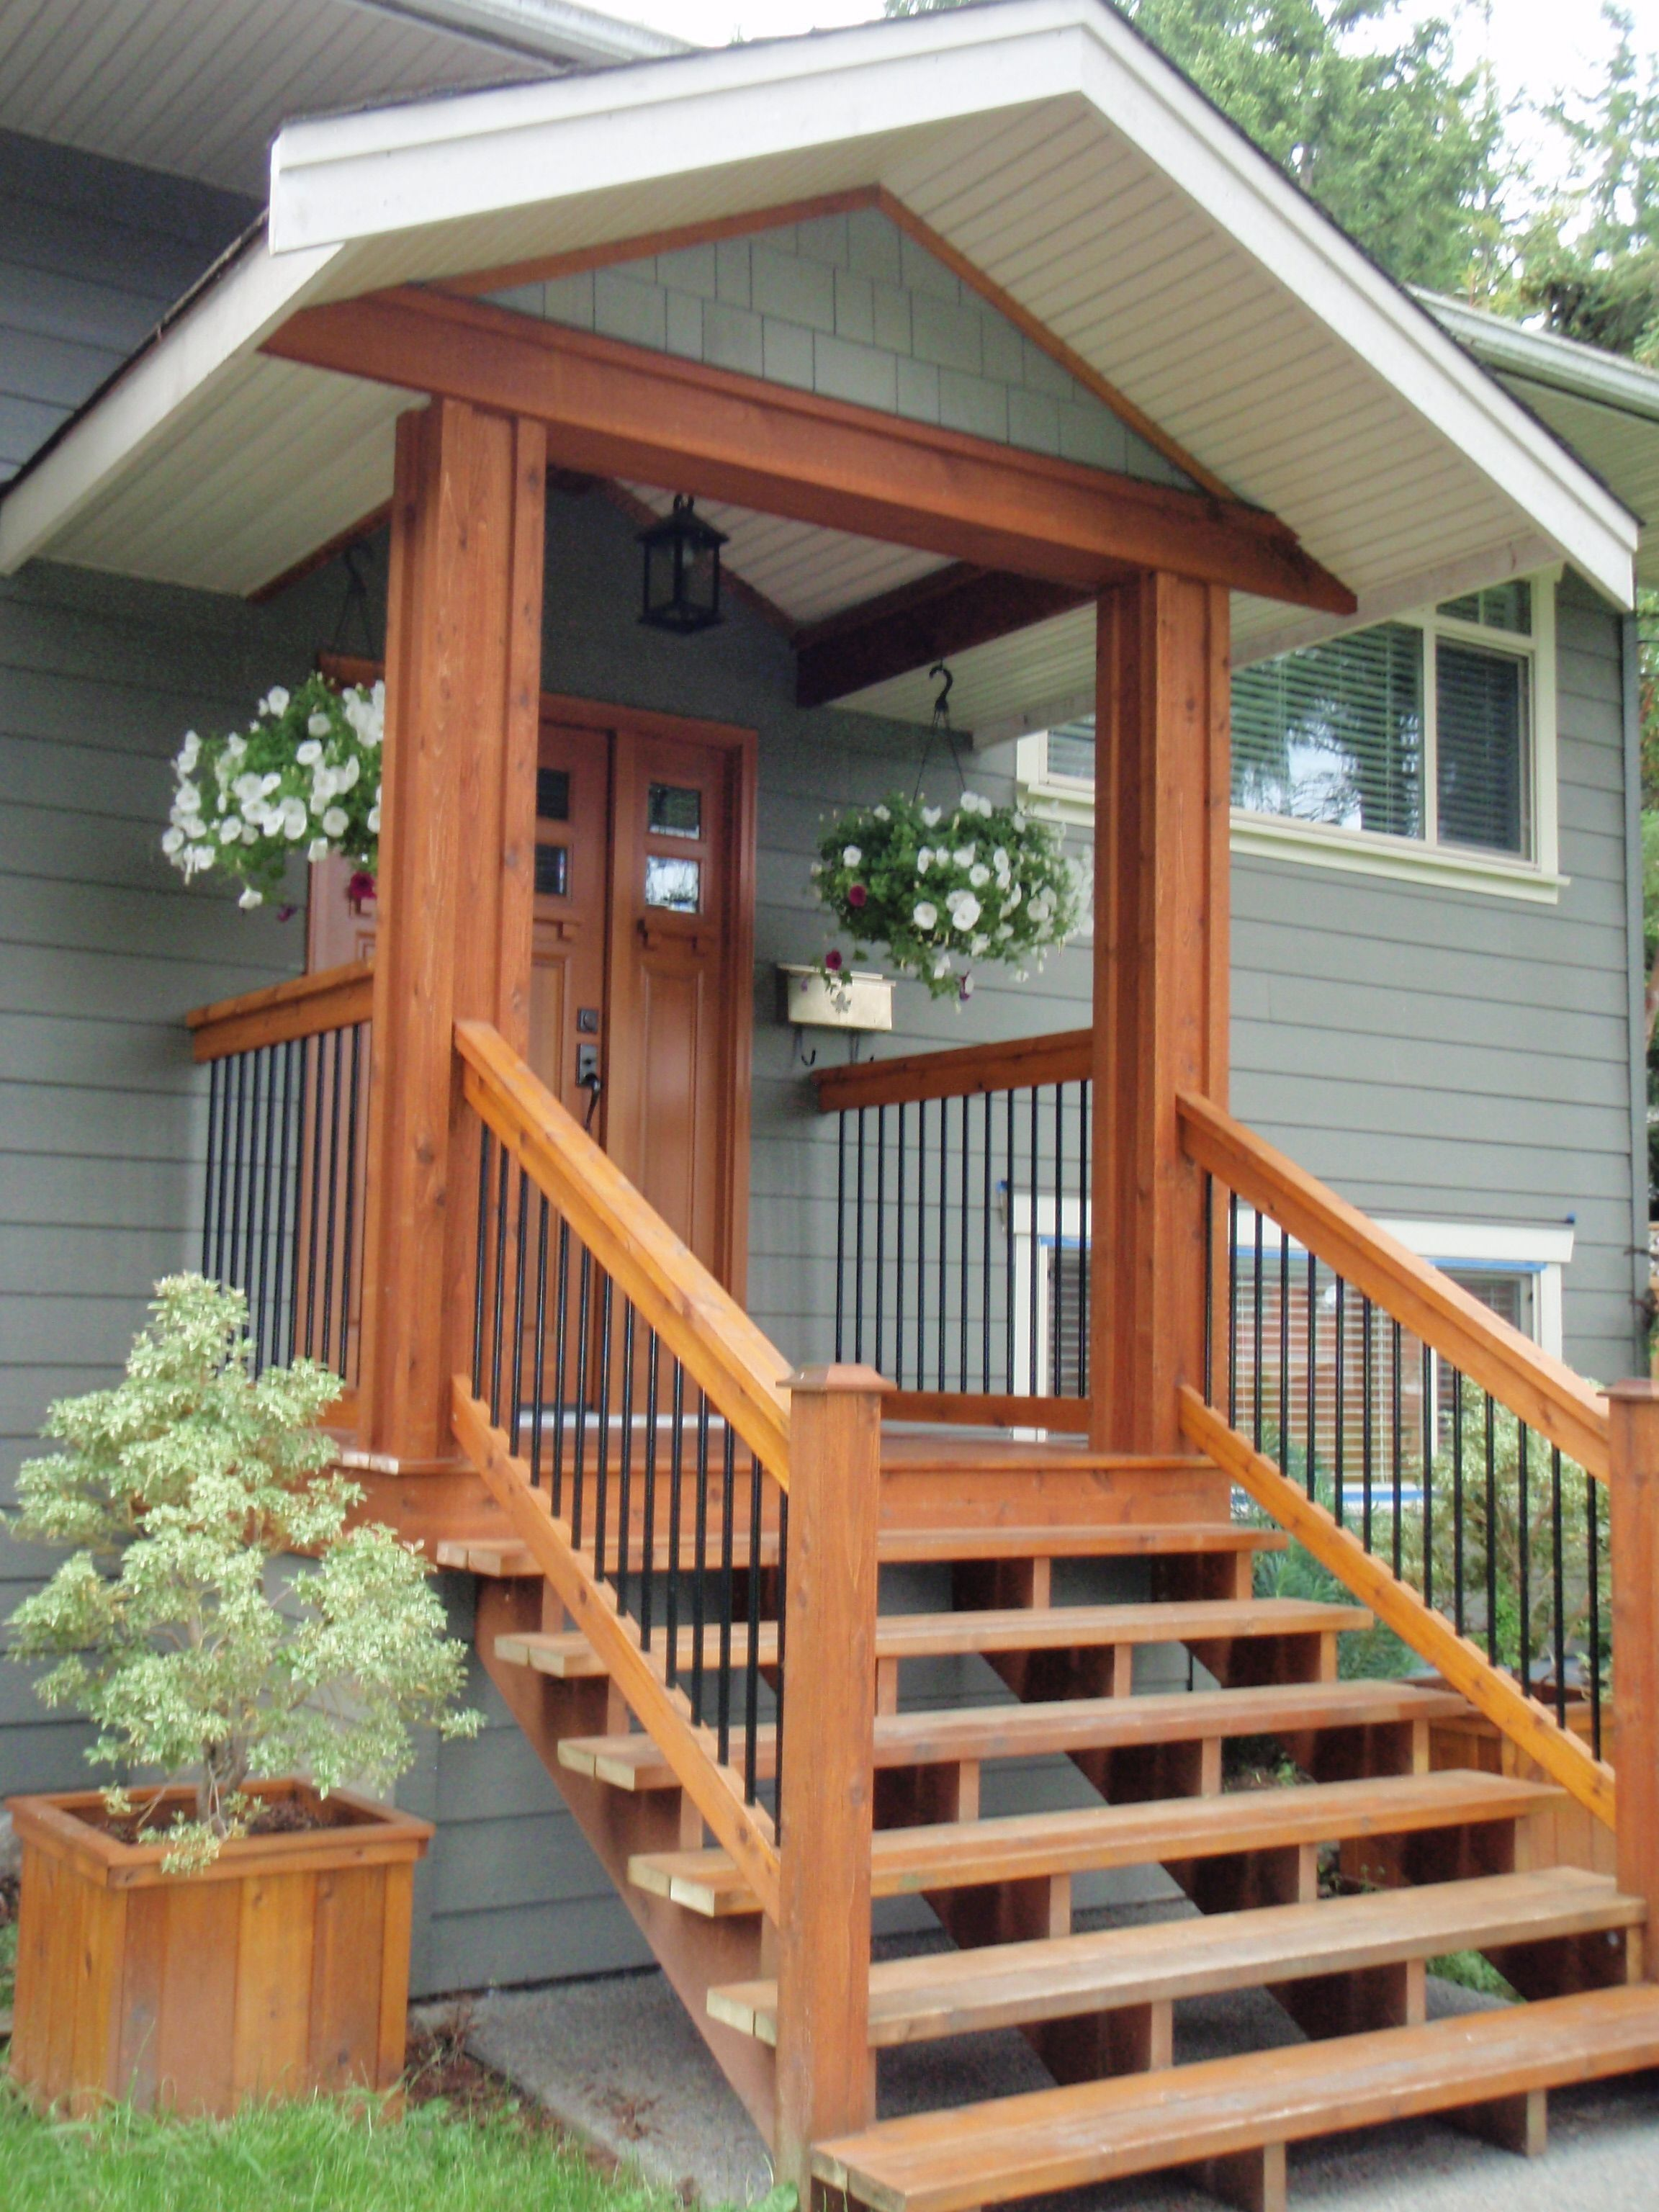 From Wood Deck Wrought Iron Lattice Panels And Steel Cable To Glass Panels Knee Walls And More We Have Front Porch Design Porch Design Front Porch Steps